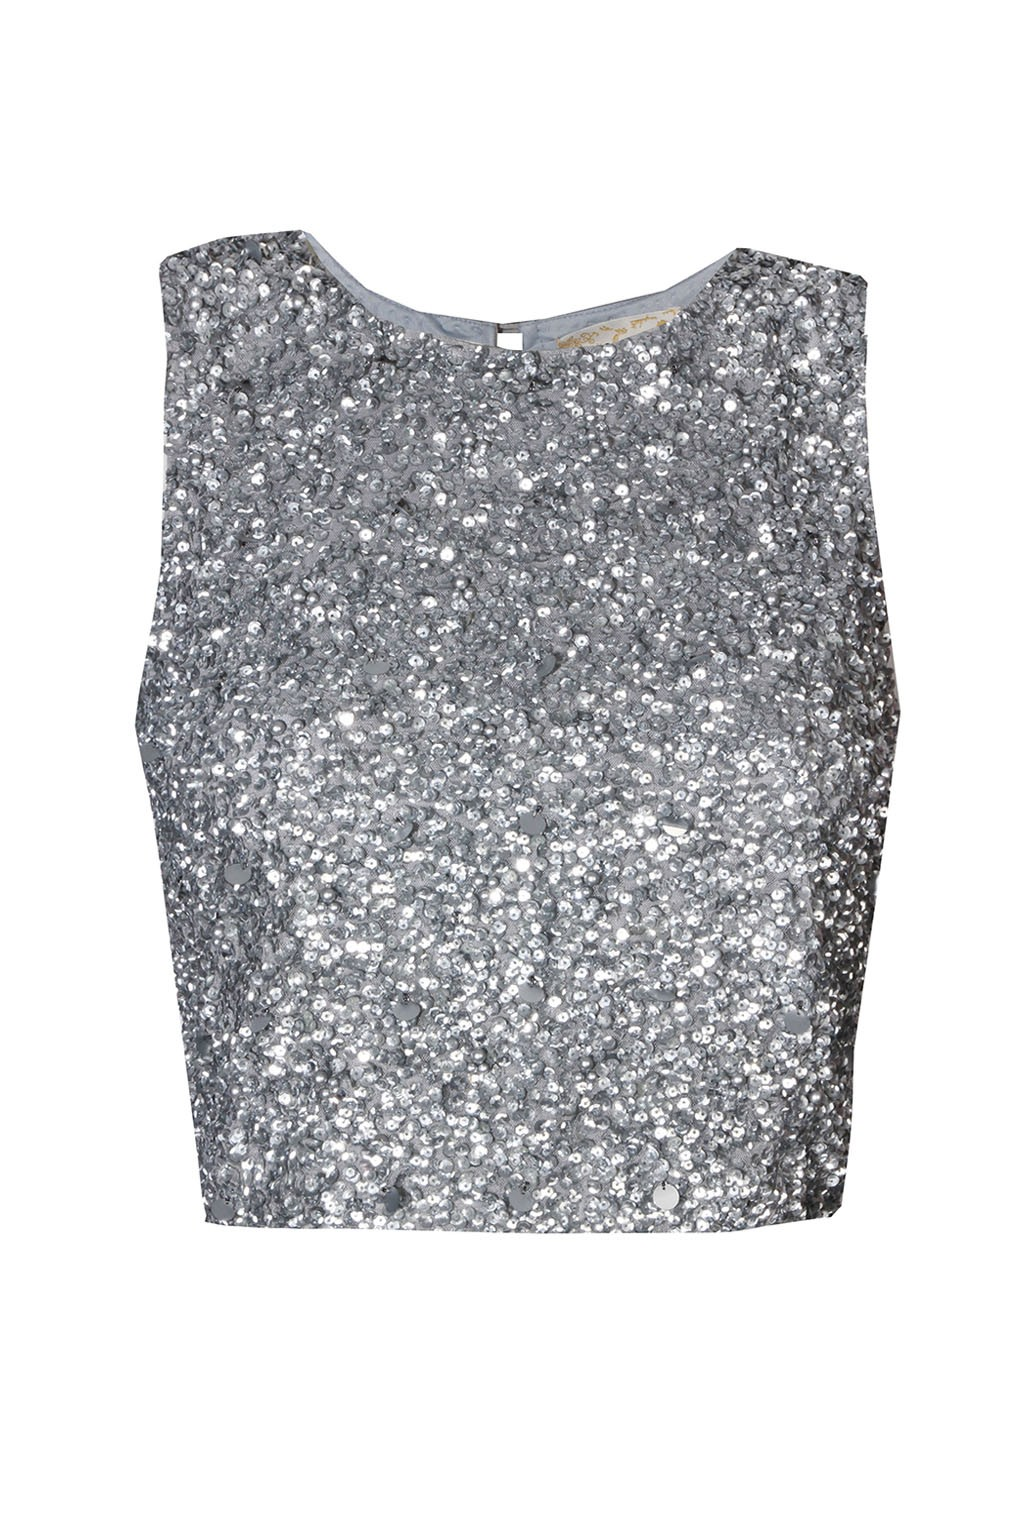 LACE&BEADS PICASSO SILVER SEQUIN TOP | LACE&BEADS TOPS